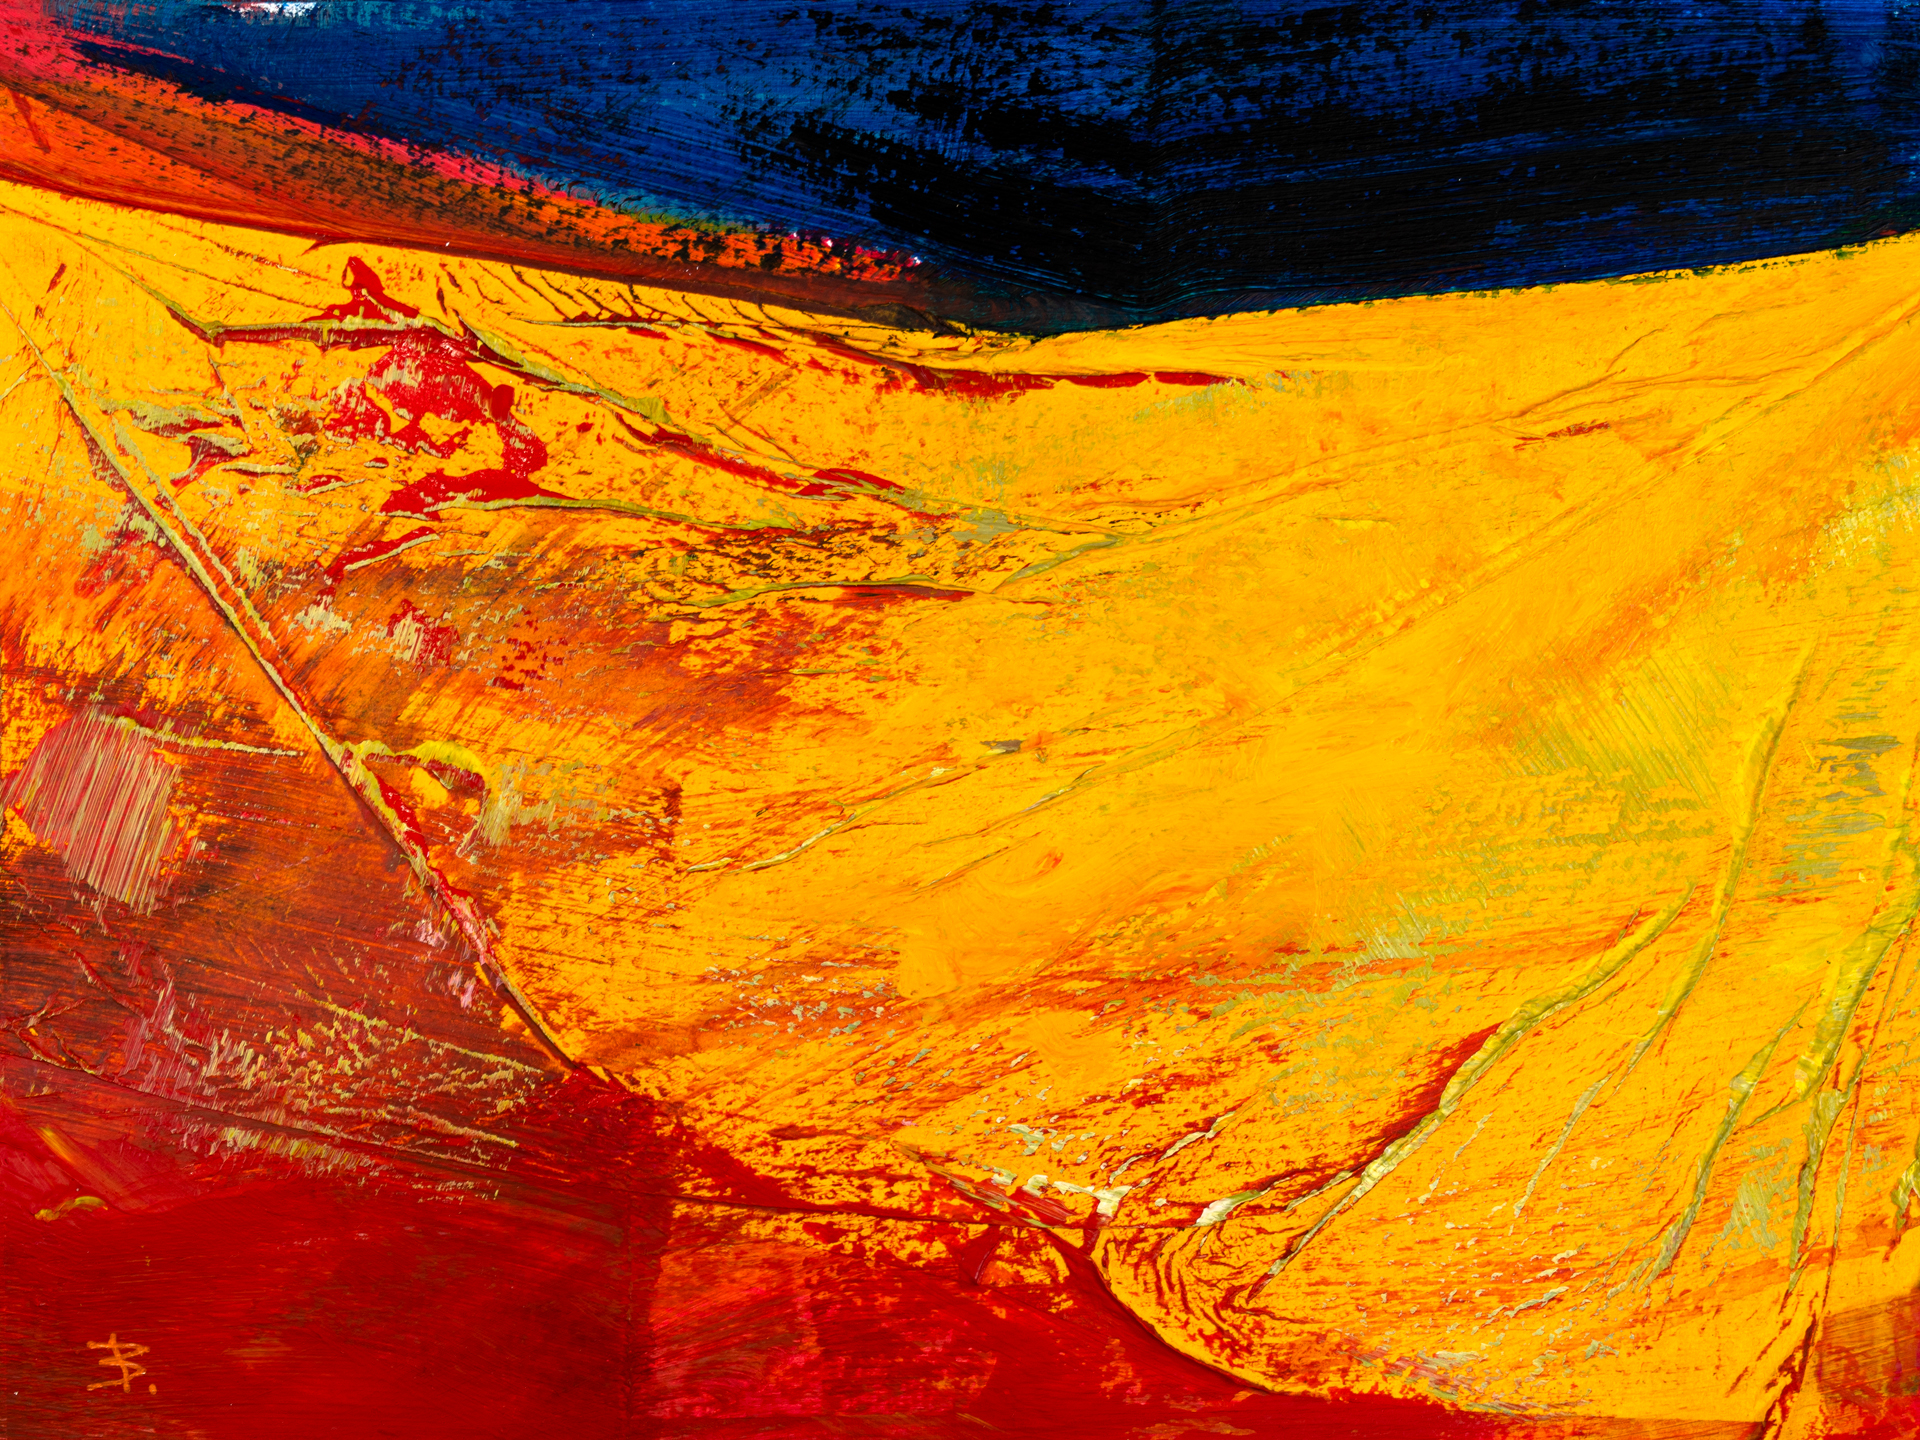 Red_Yellow_and_Blue_10220_7_24x32, © Ernest Bisaev